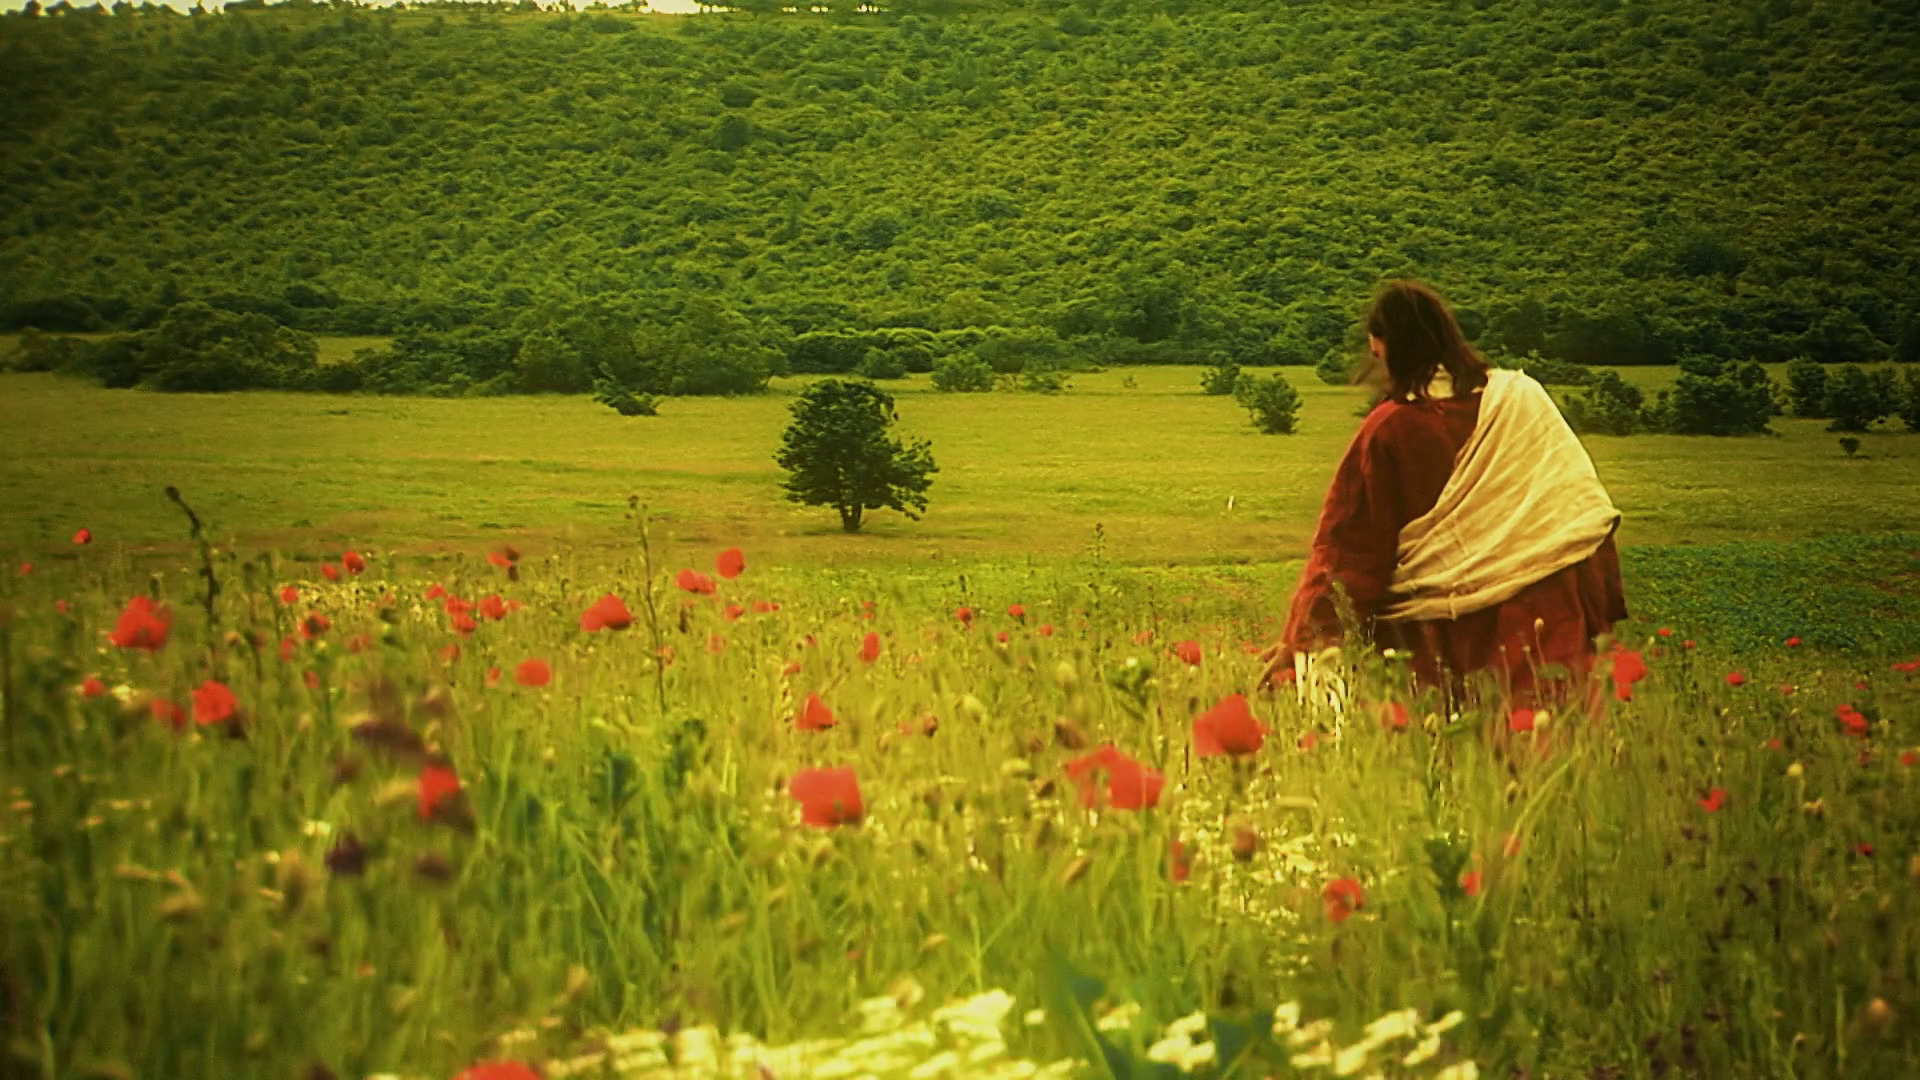 videoblocks-jesus-as-seen-from-behind-walking-alone-through-poppy-field-long-shot_hgqoeaeom_thumbnail-full01